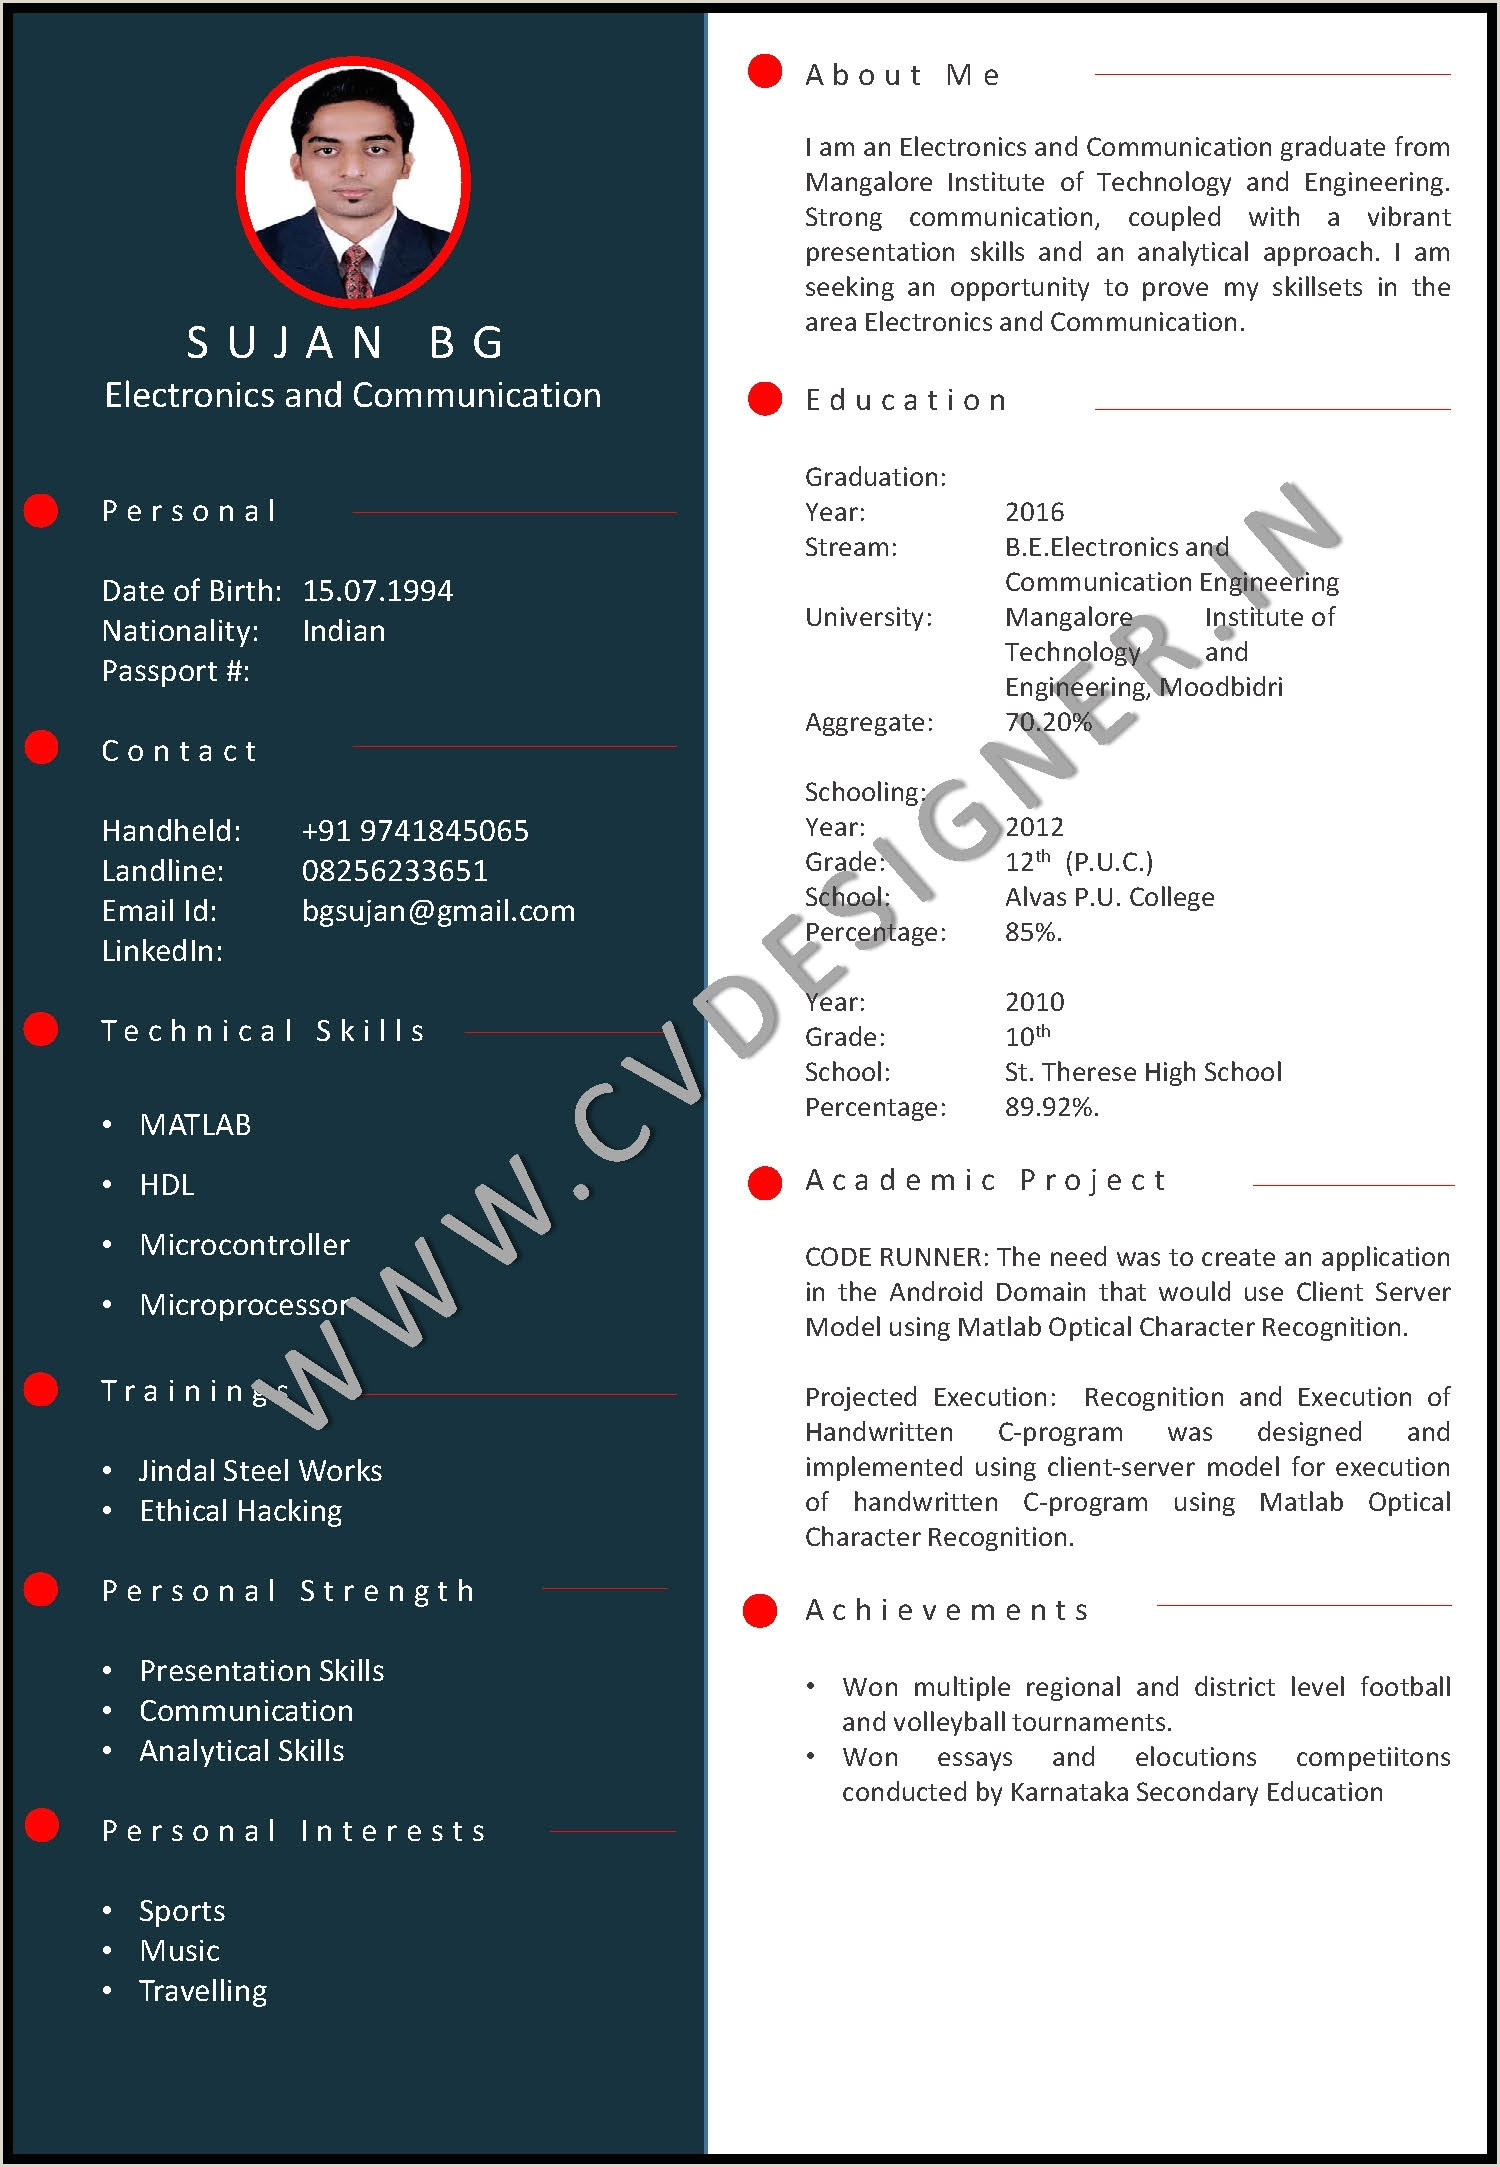 Fresher Resume format for Cse How to Make A Good Resume as A Fresher Quora